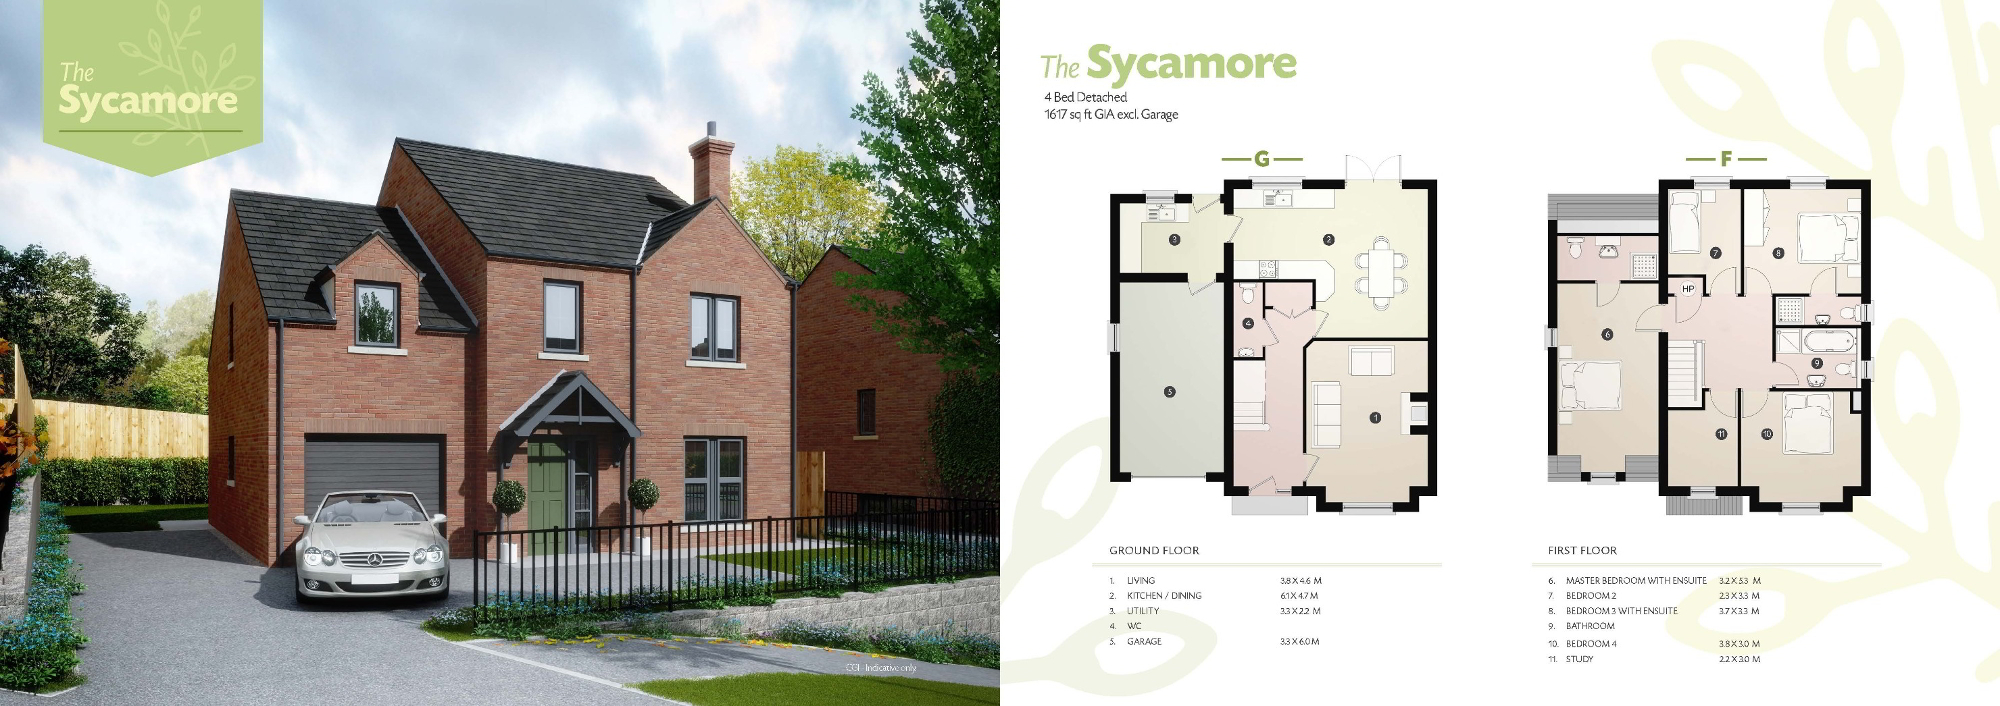 Photo 1 of Type A- The Sycamore, Drumgarrow Avenue, Coa Road, Enniskillen